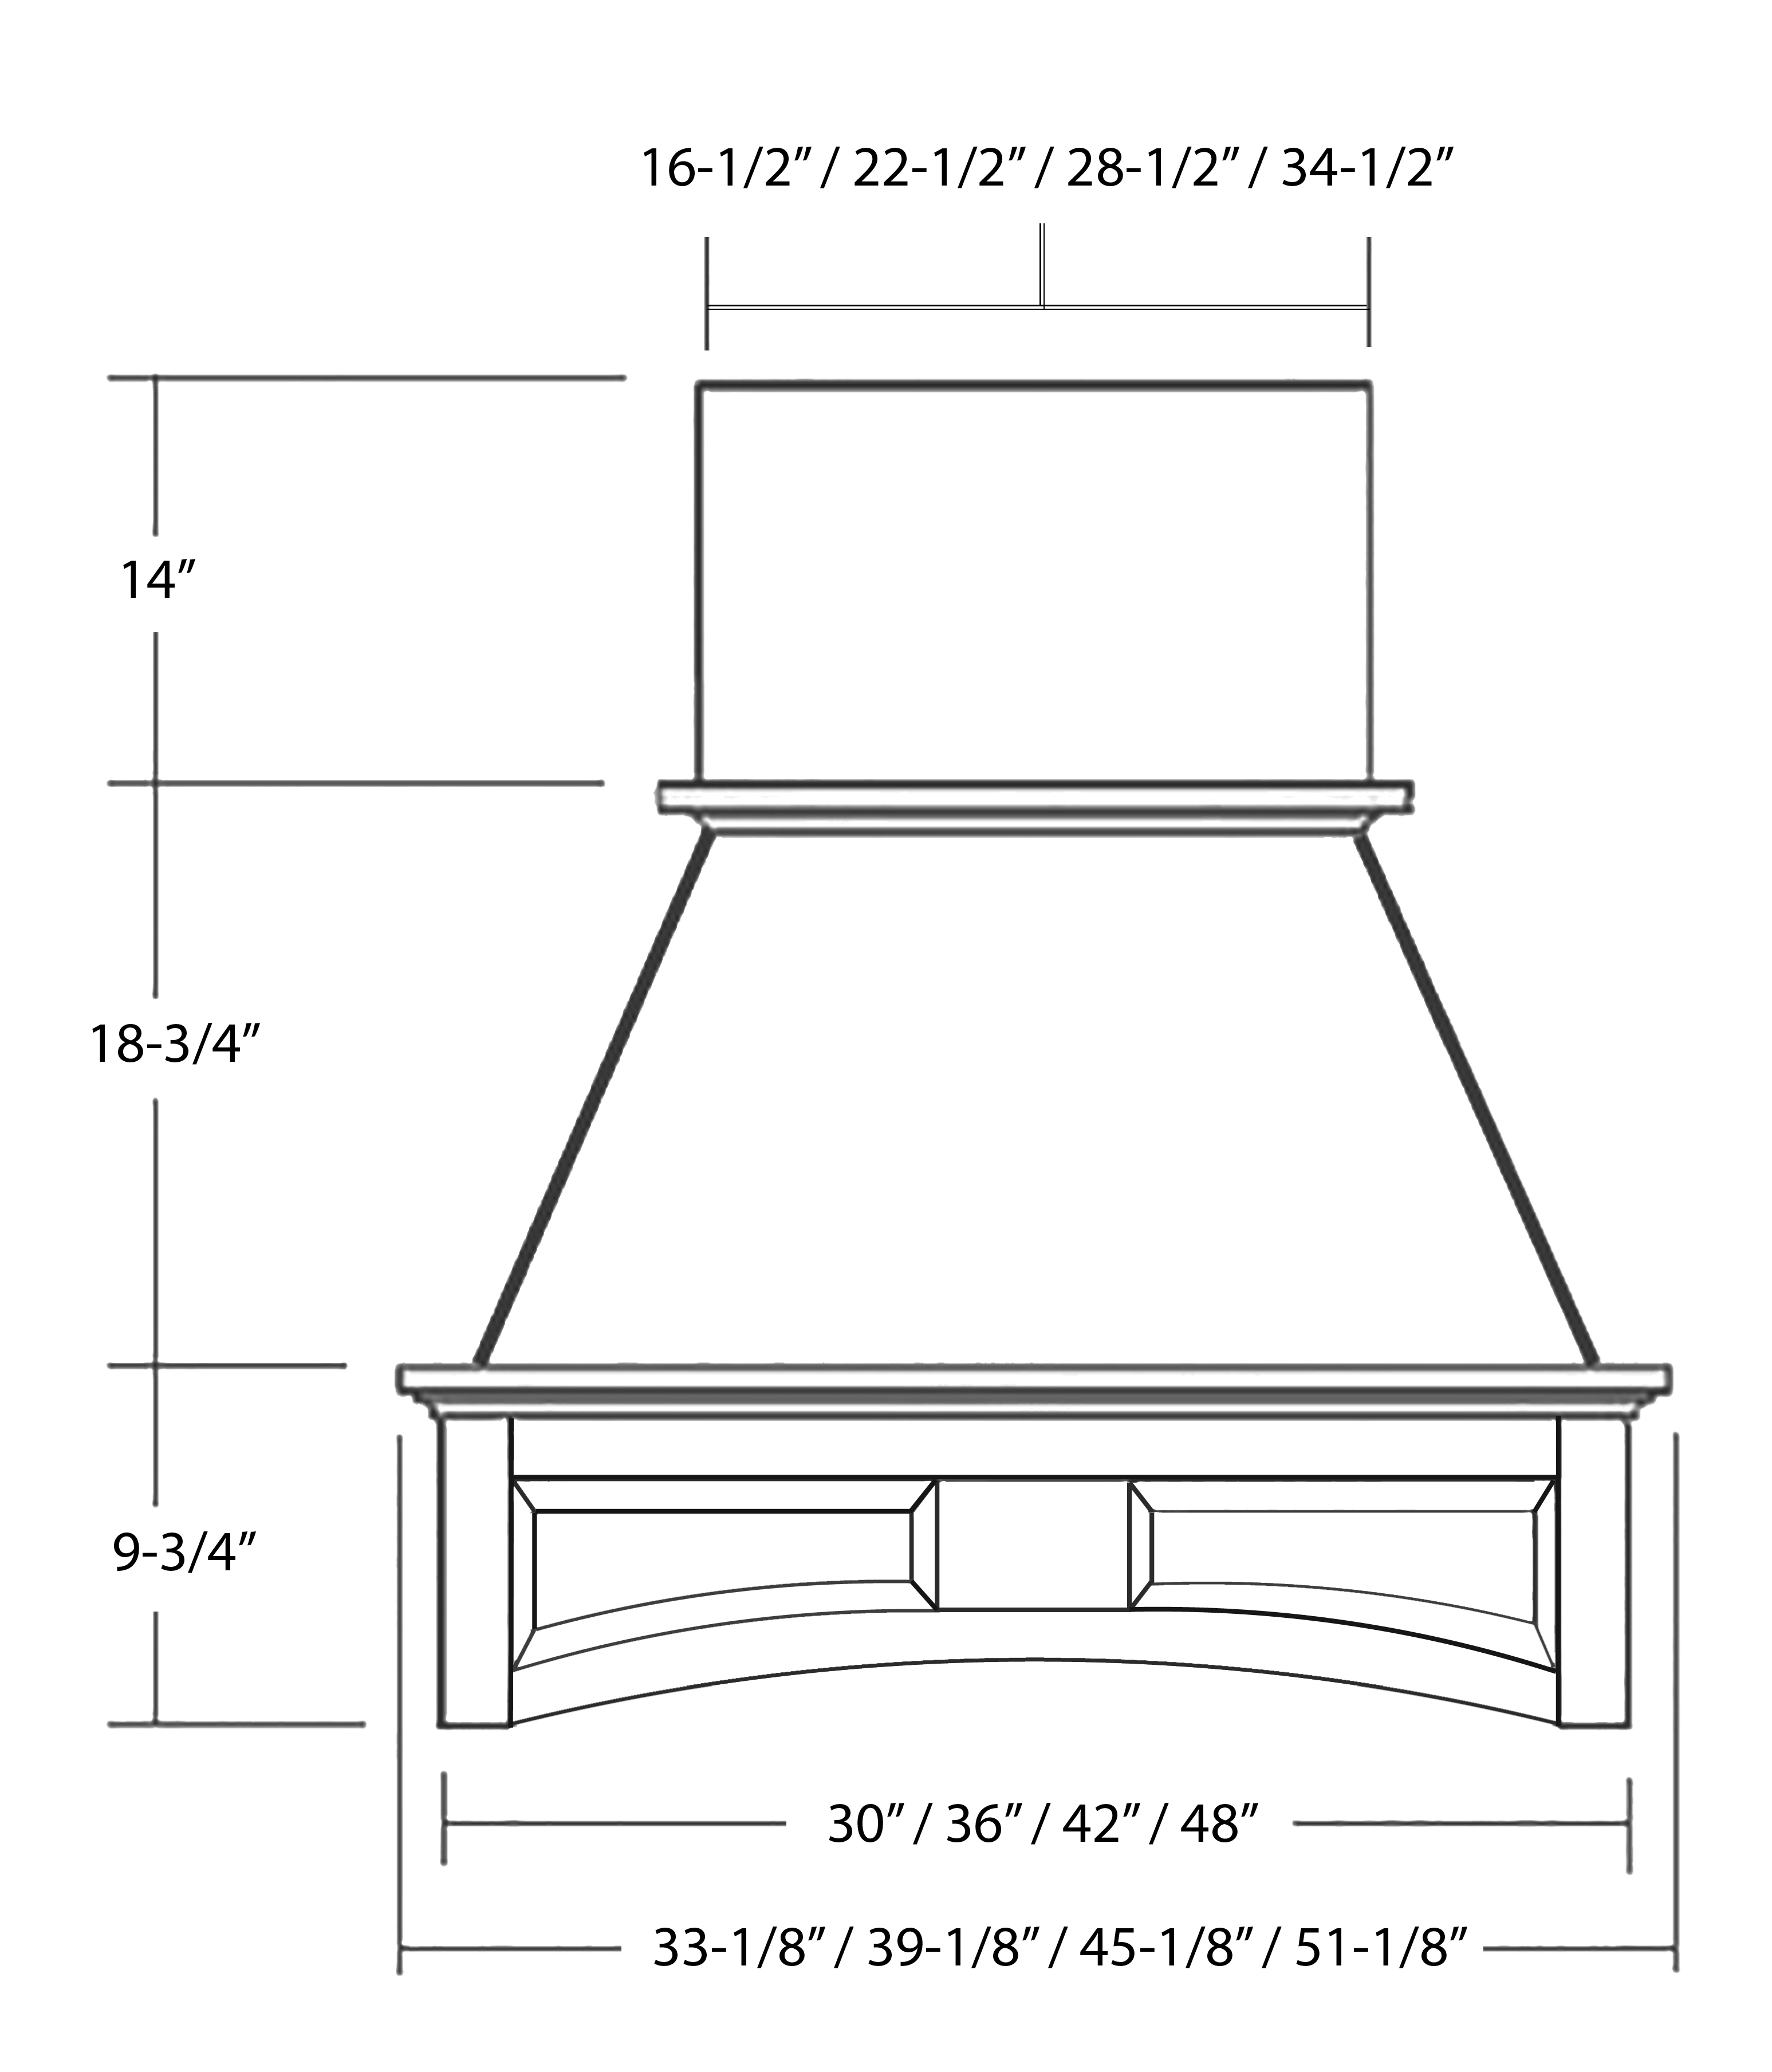 SY-WCHAP WALL HOOD ( STANDARD) front view